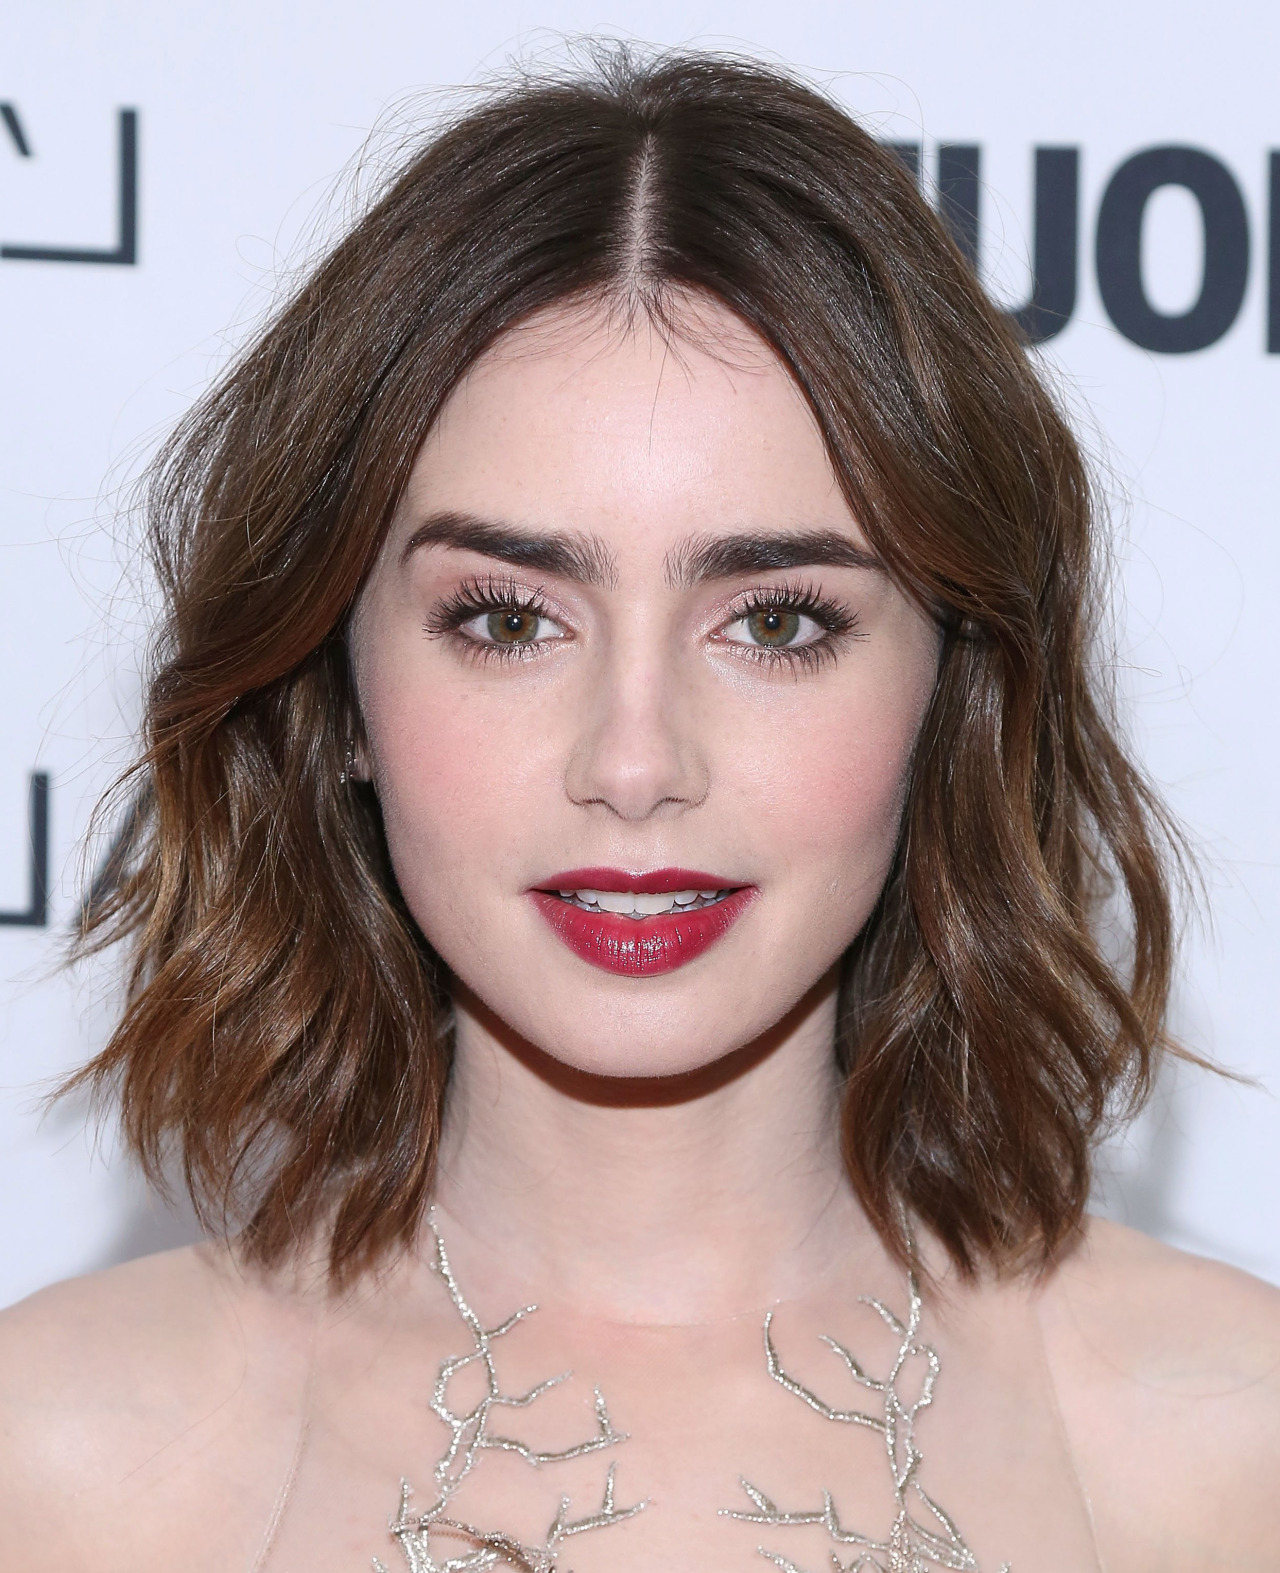 15 Of The Best Hairstyles For Medium Length Wavy Hair – The Skincare Pertaining To Latest Medium Haircuts For Wavy Hair (View 13 of 20)